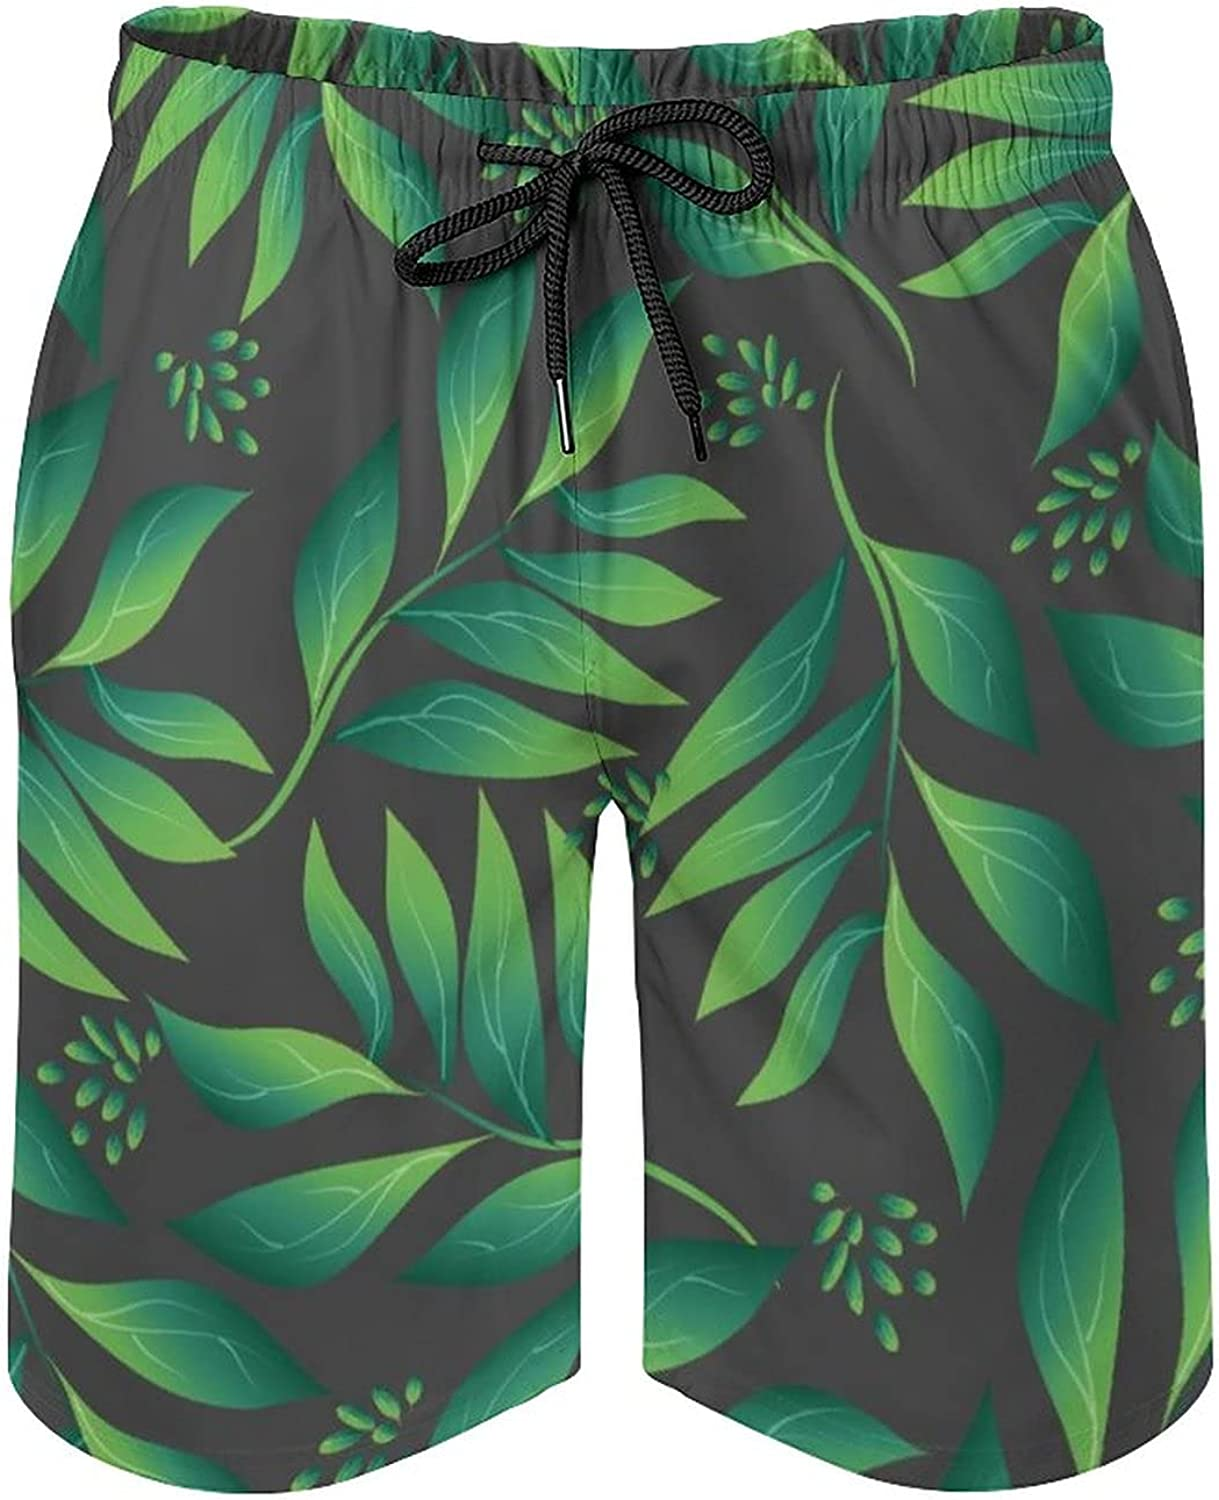 Men's Barracuda Board Shorts with Pockets Tropical Pattern